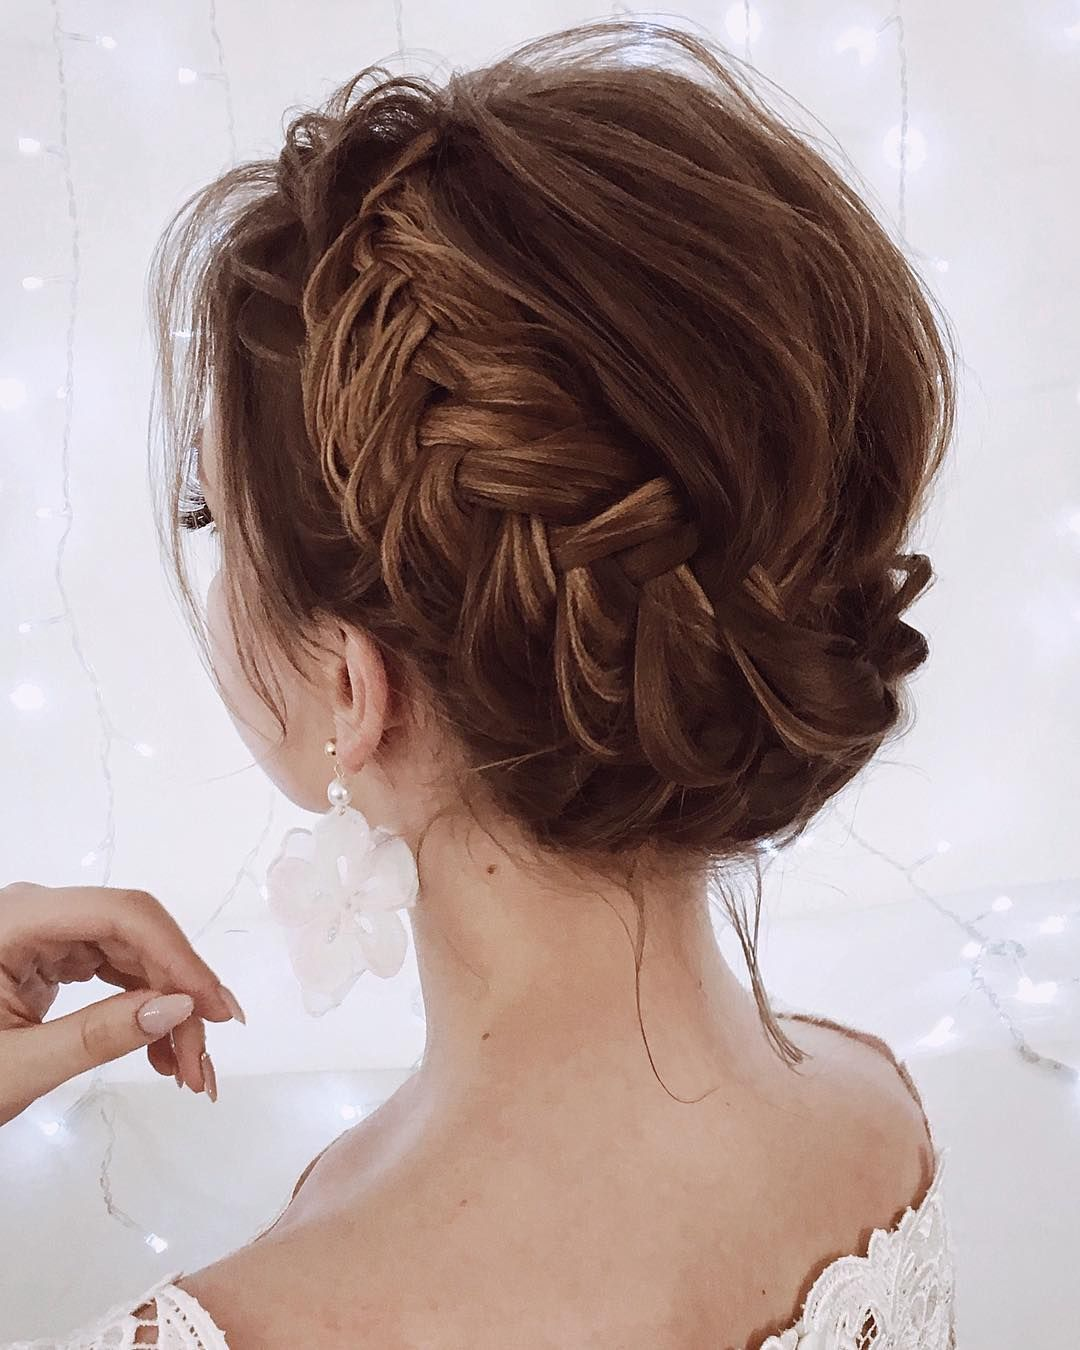 Prom Hairstyle Unique Updo Hairstyle  High Bun Hairstyle Prom Hairstyles Wedding